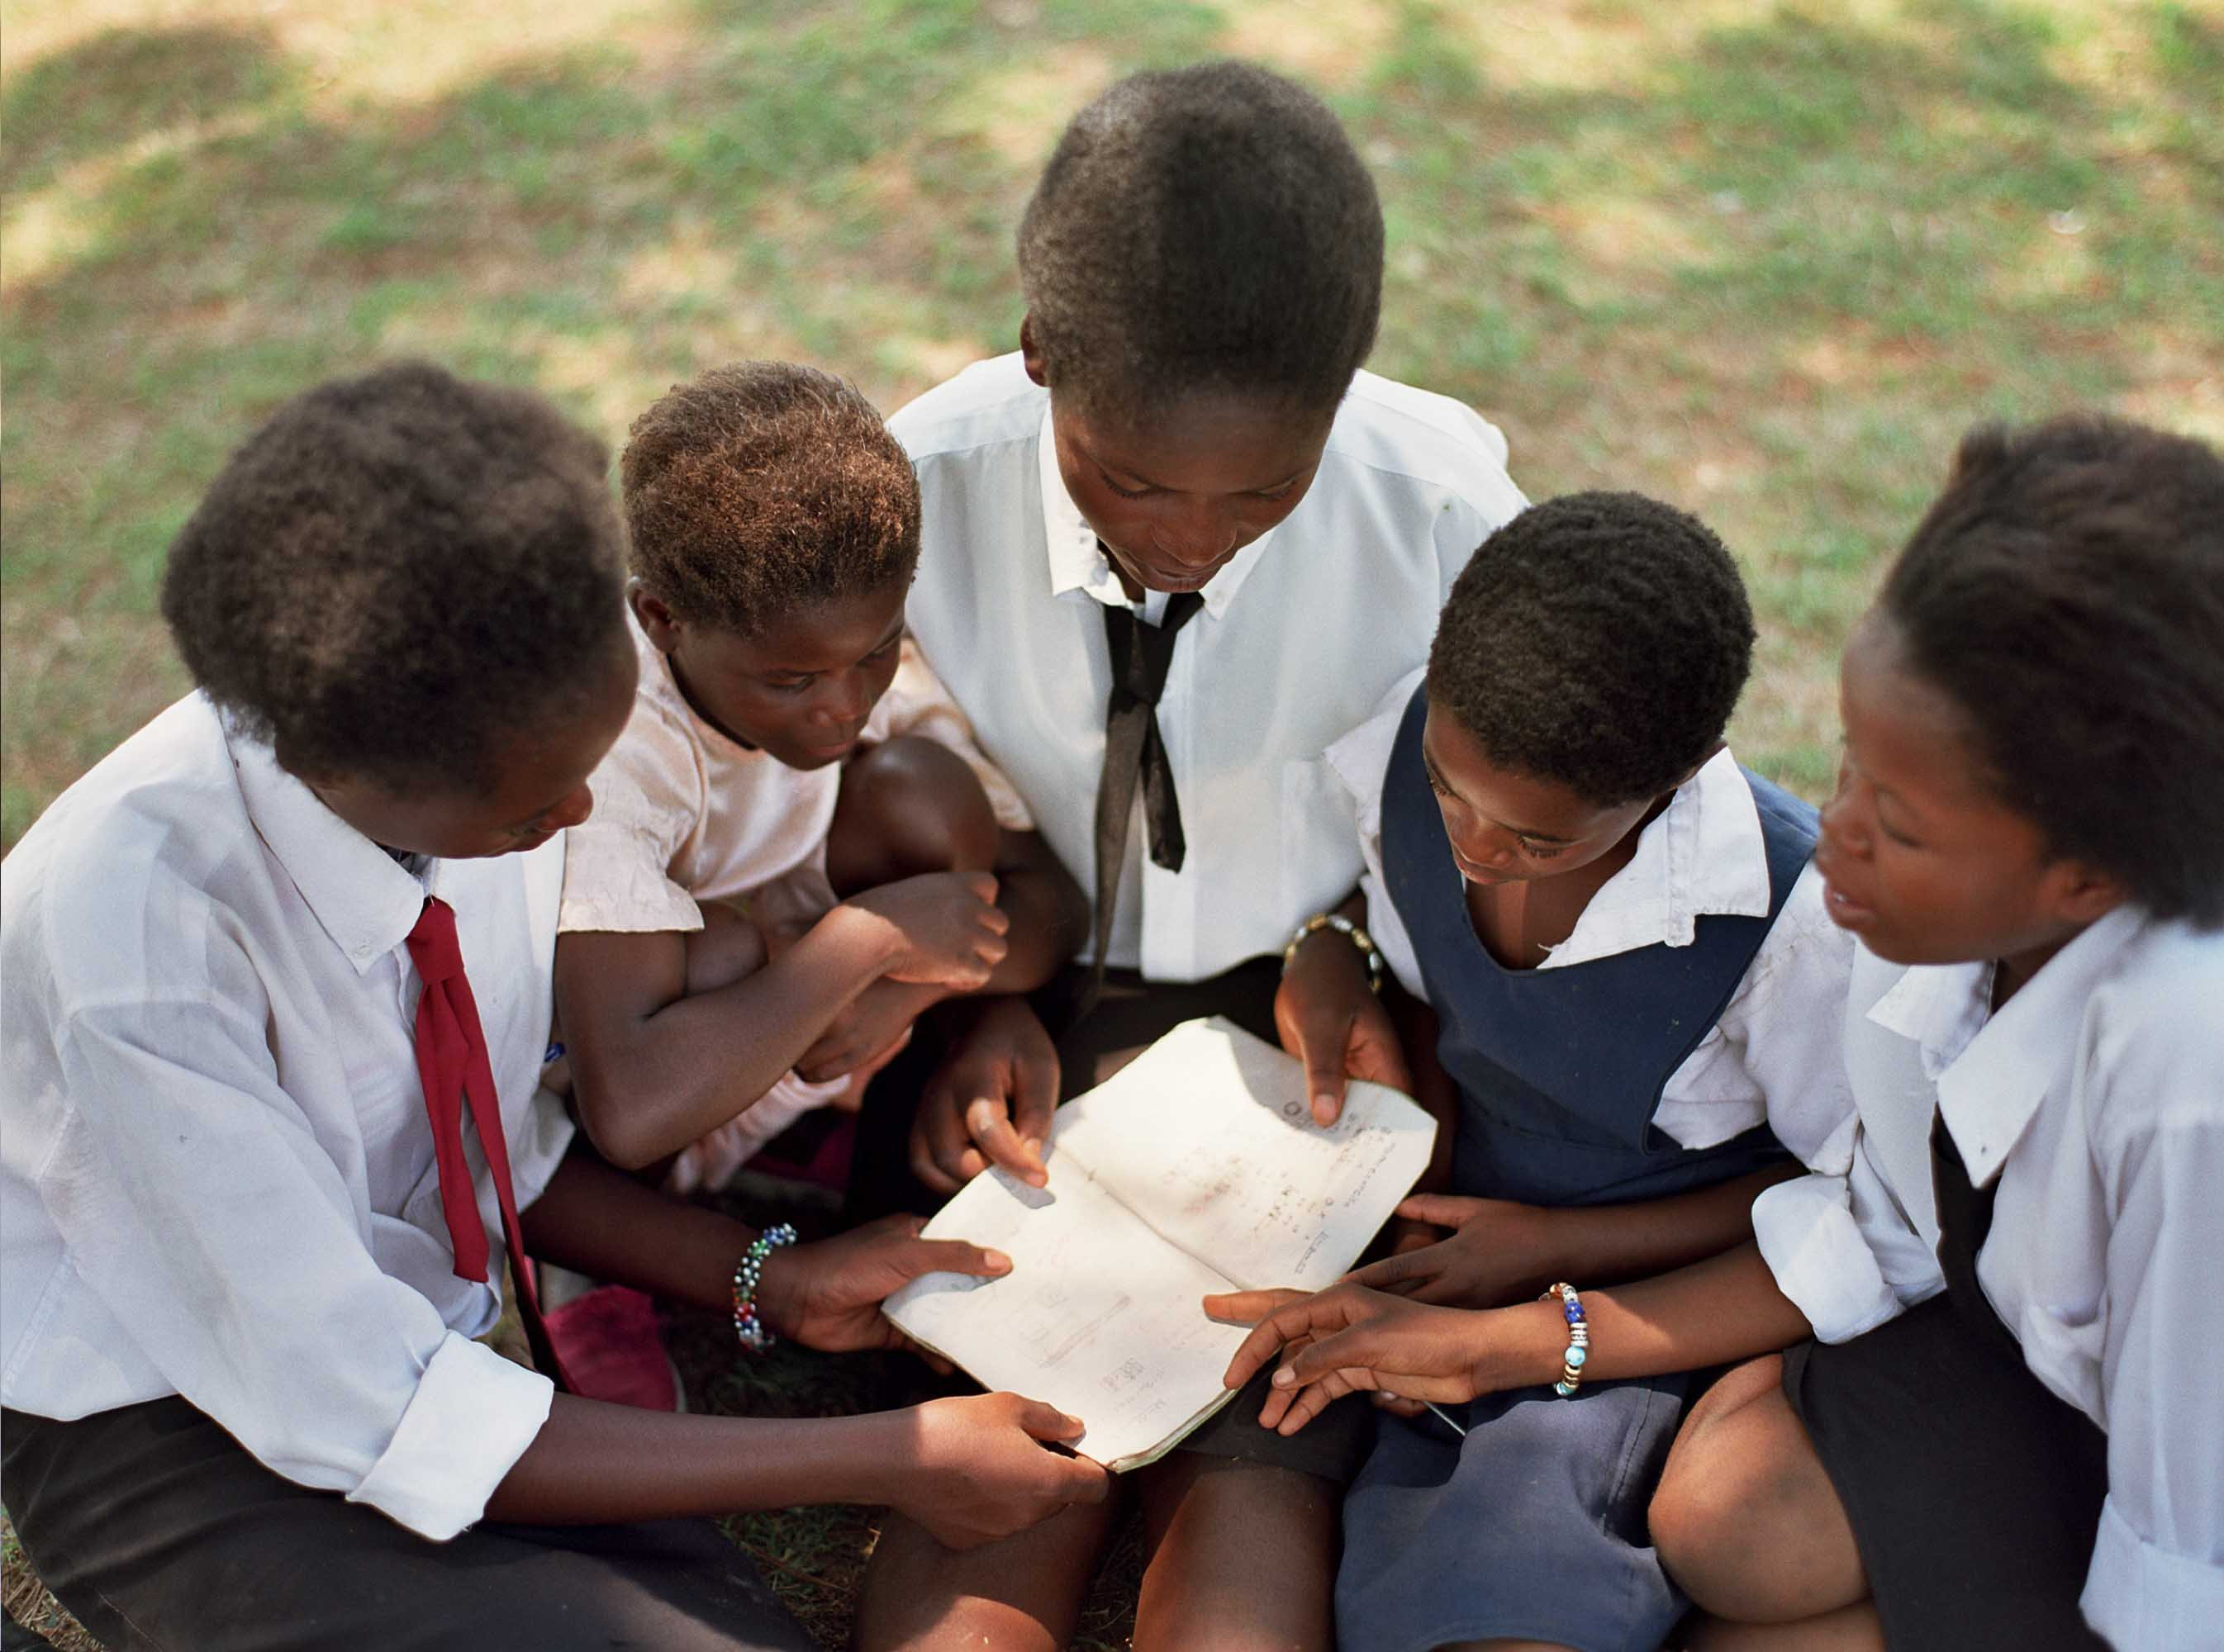 Camfed's alumnae support girls to stay in school, help to prevent child marriage, and return young mothers to school.